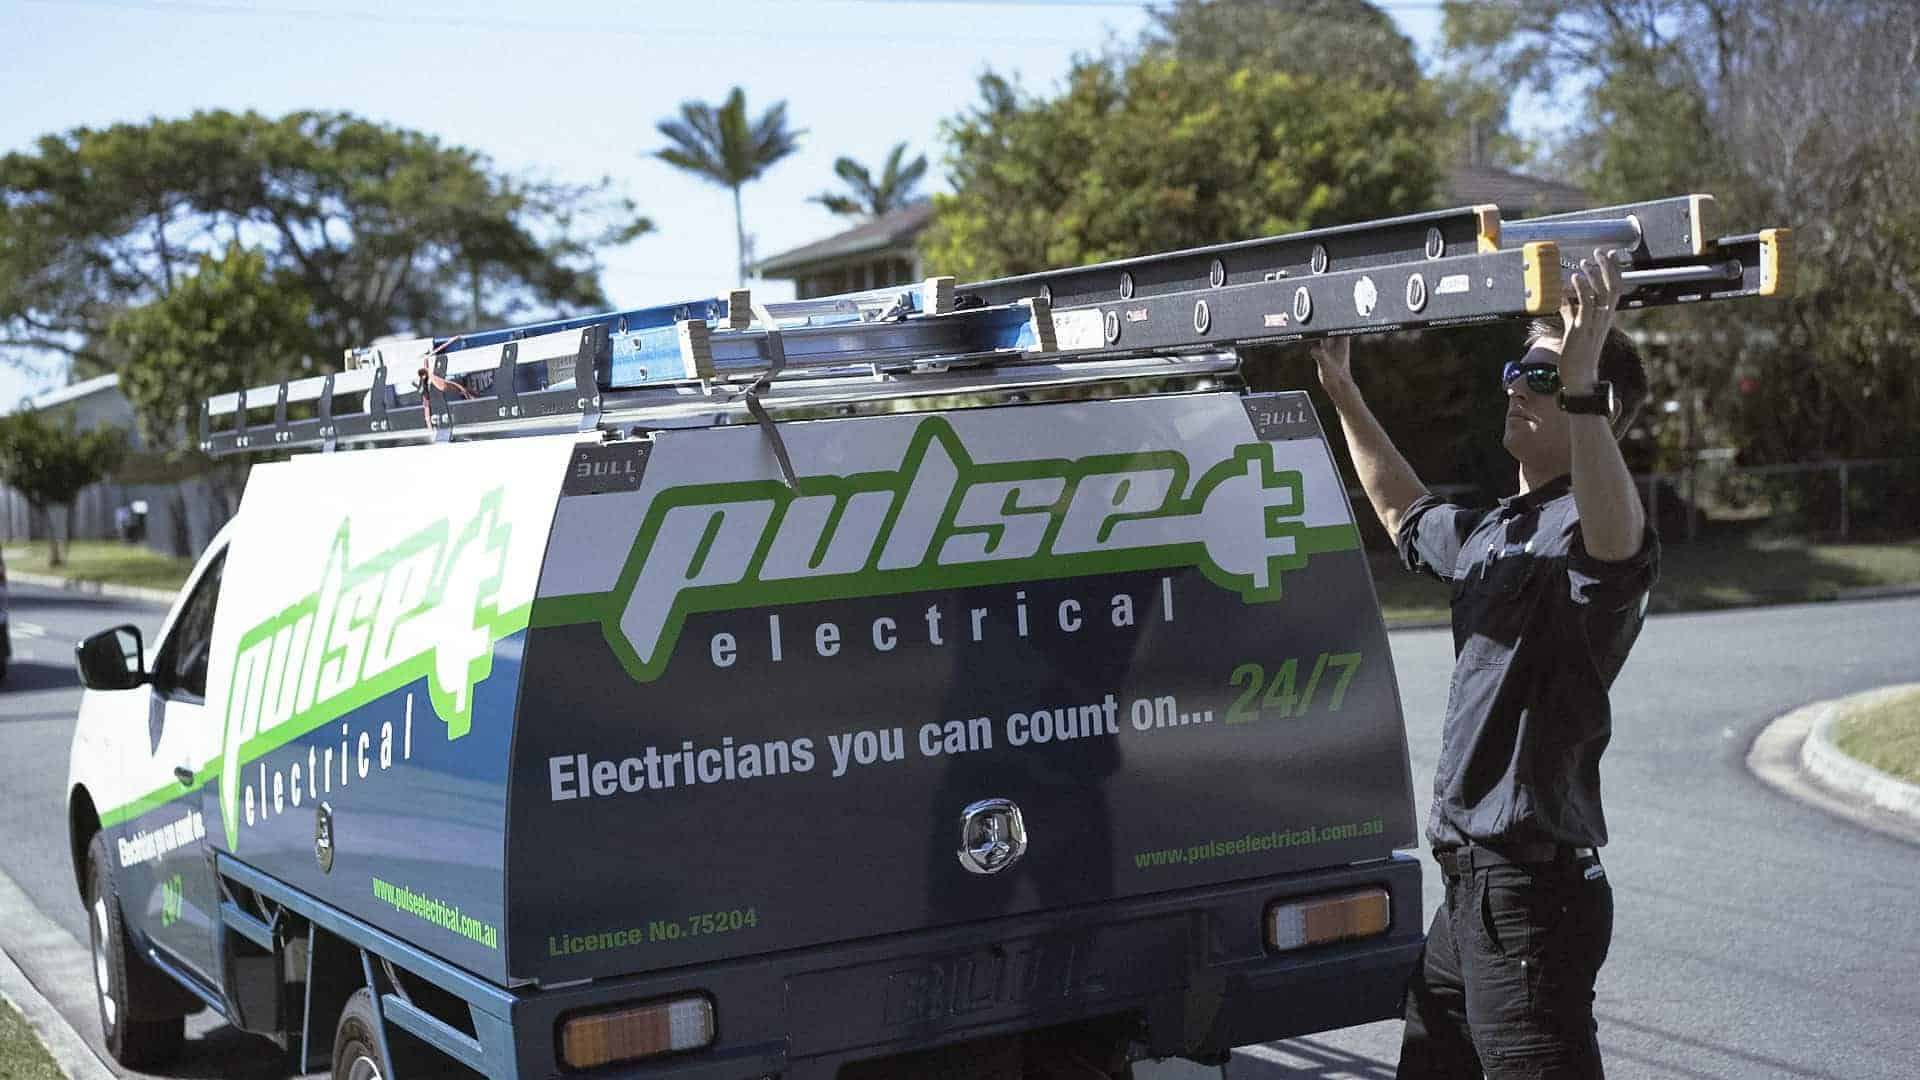 electrician hervey bay